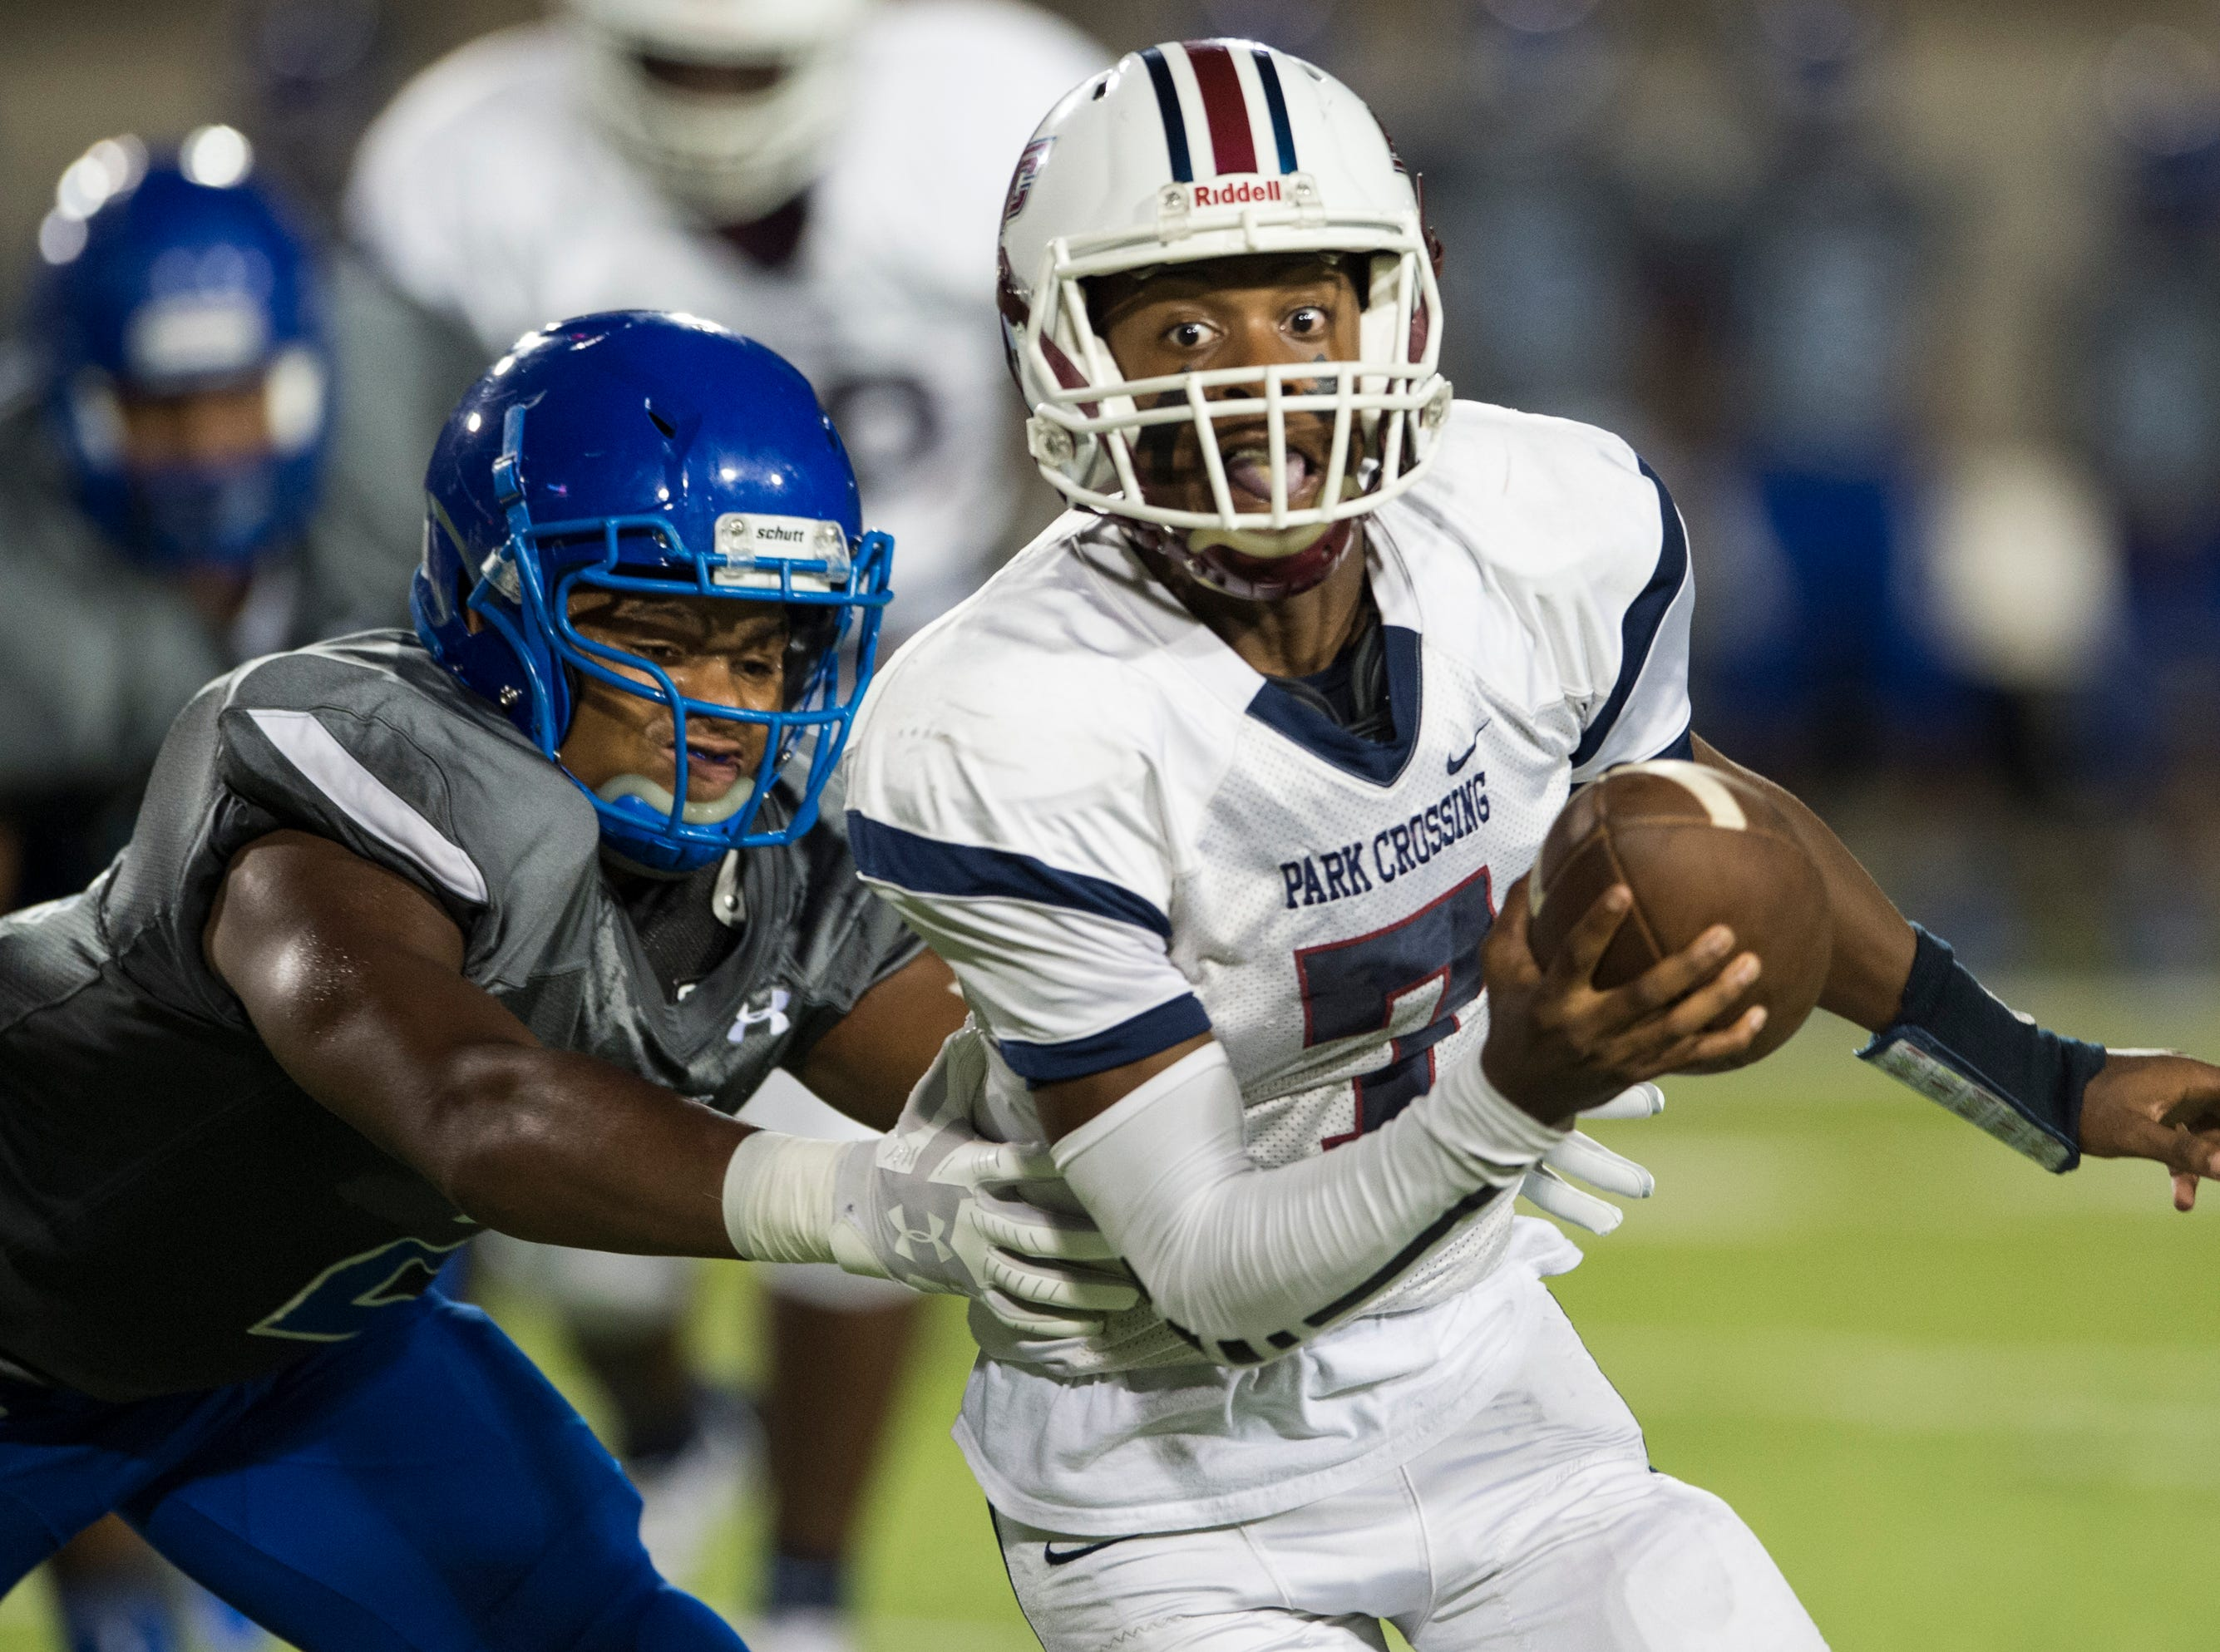 Park Crossing's Trevor Robinson (7) is taken down by Lanier's Michael Artis (2) at Cramton Bowl in Montgomery, Ala., on Friday, Sept. 21, 2018. Lanier leads Park Crossing 14-7 at halftime.